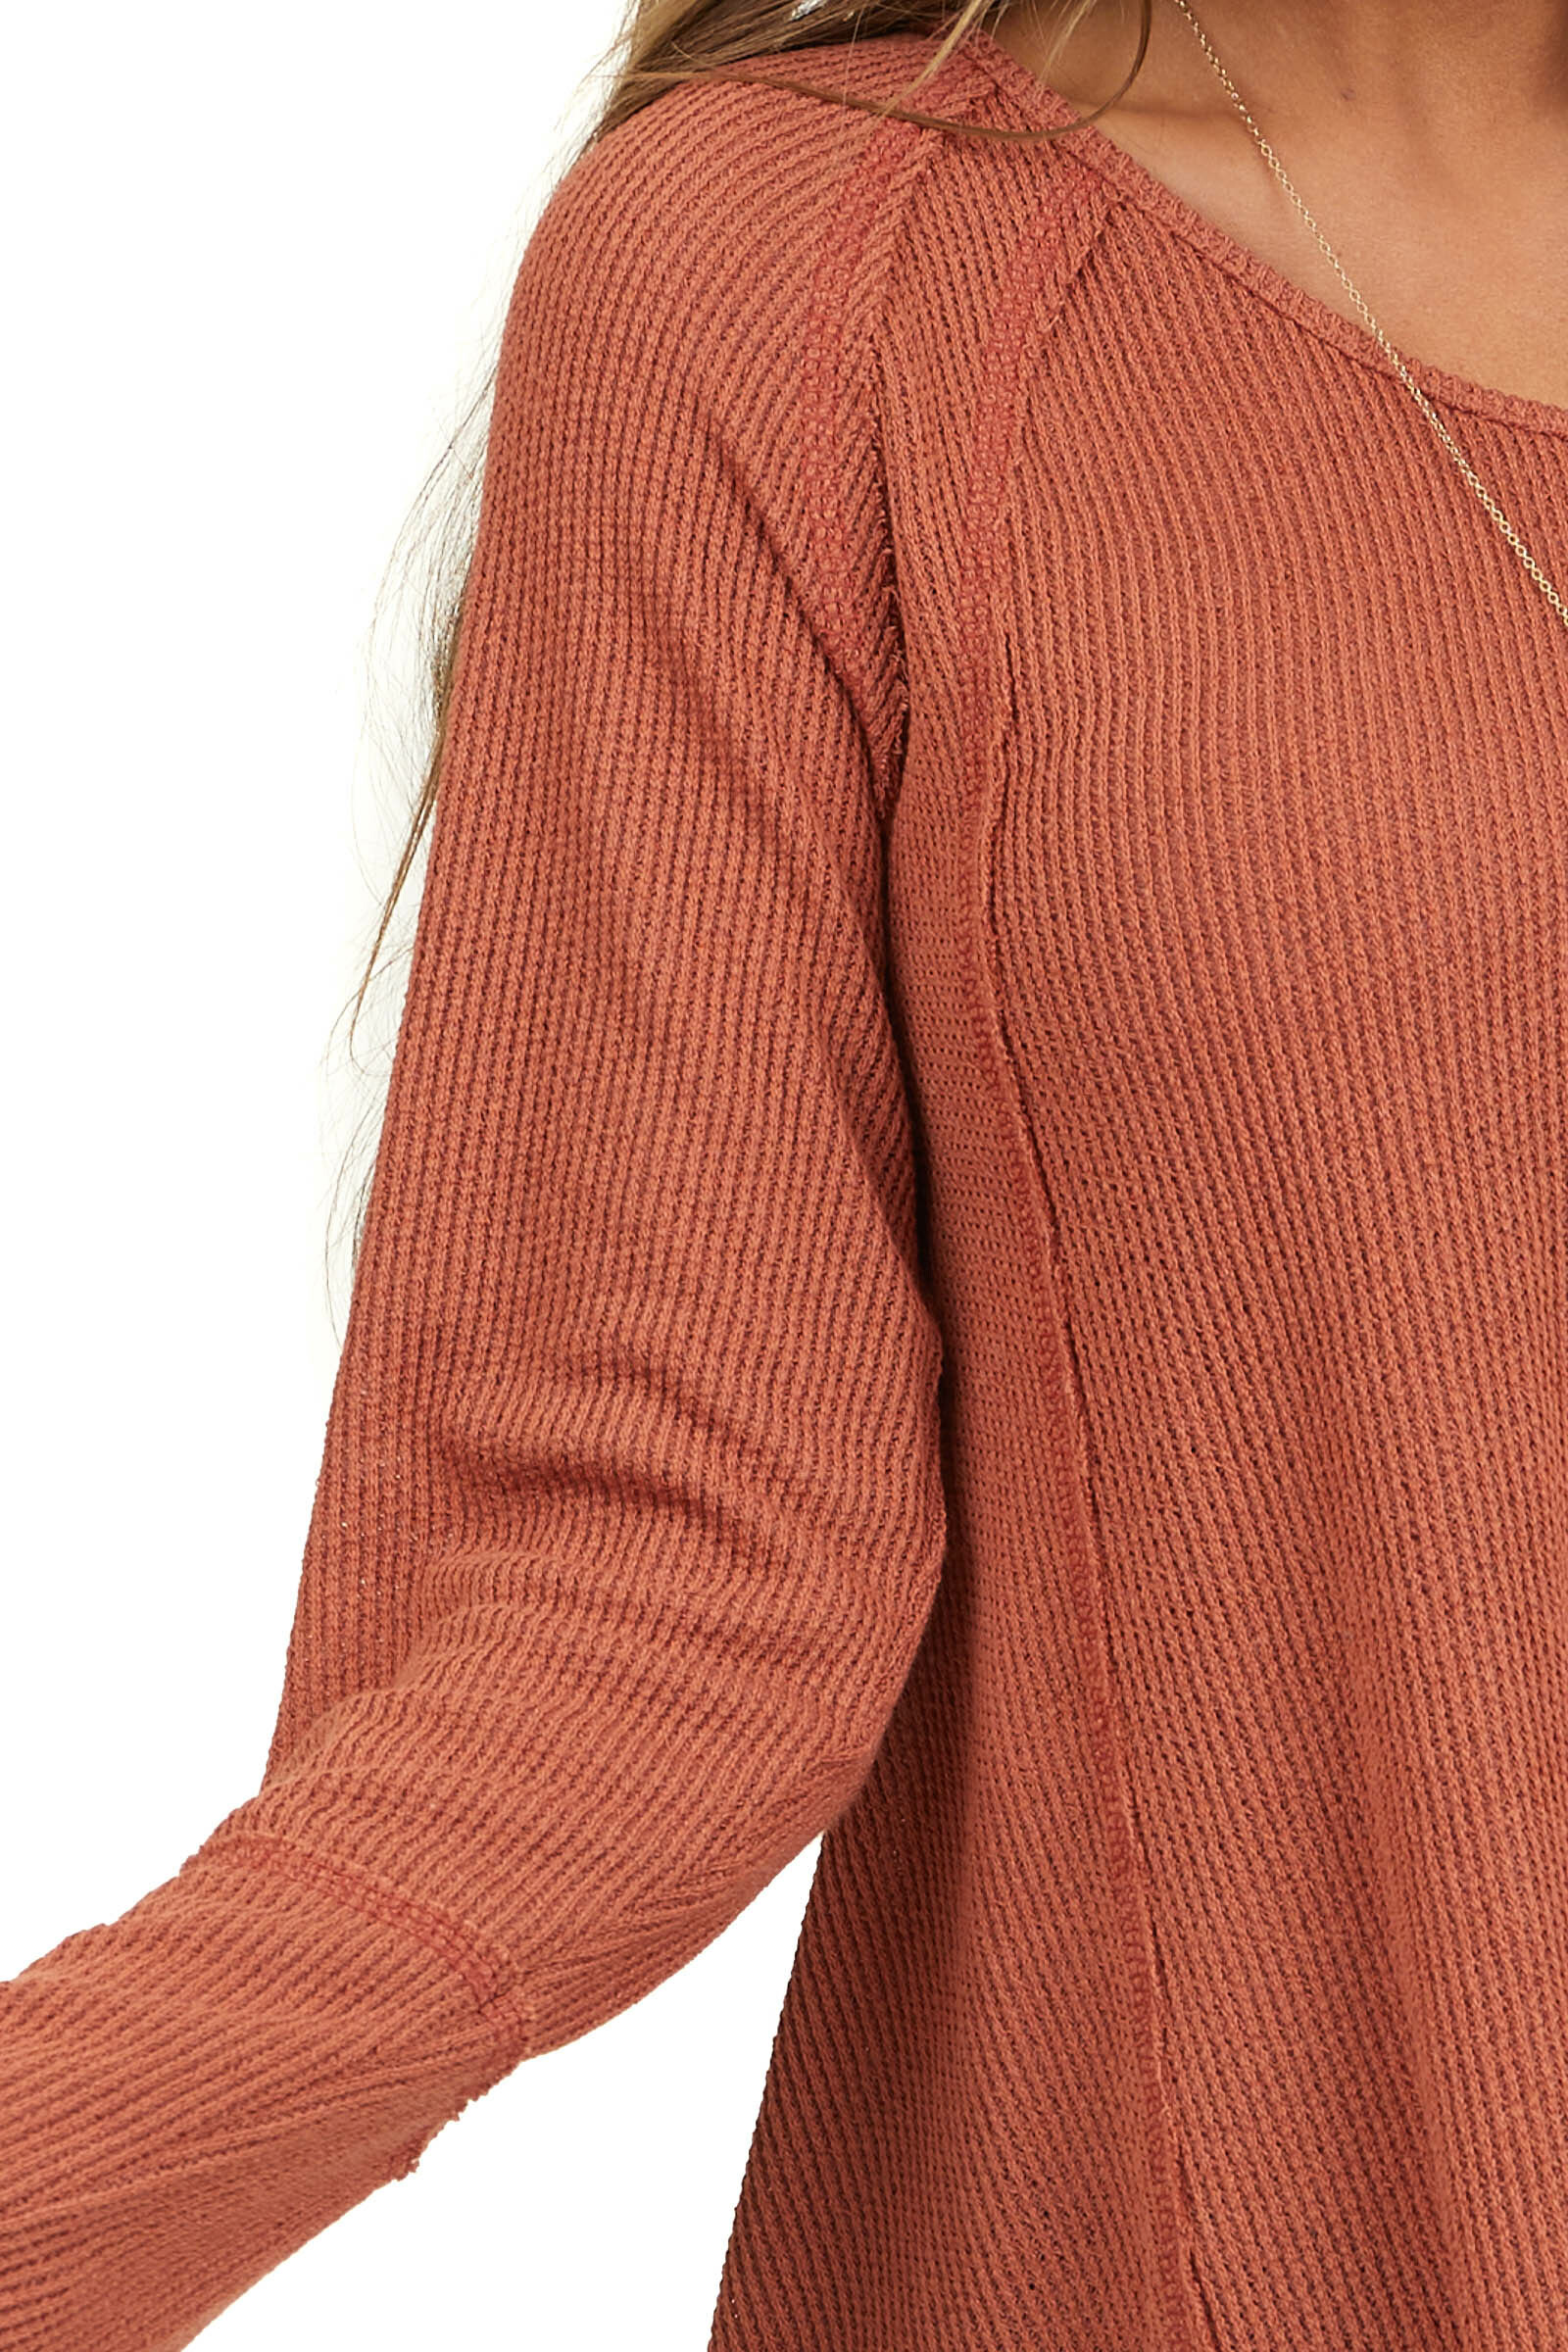 Terracotta Long Sleeve Knit Top with Raw Hemline Details